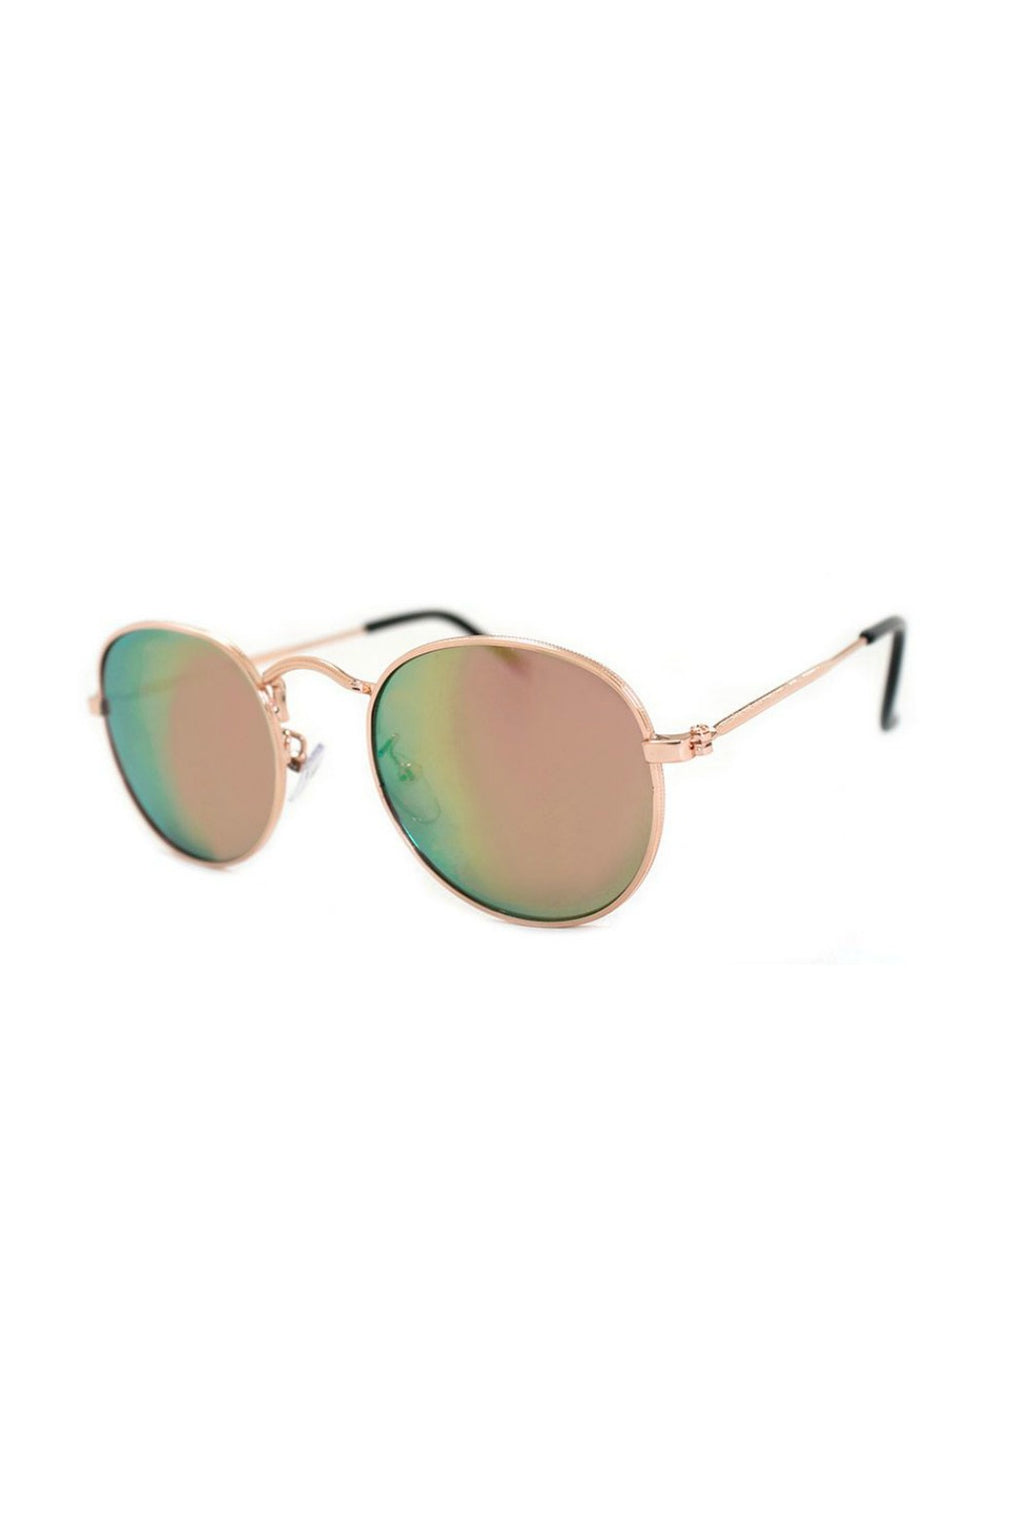 Deliverance Sunnies - Gold/Pink Mirror